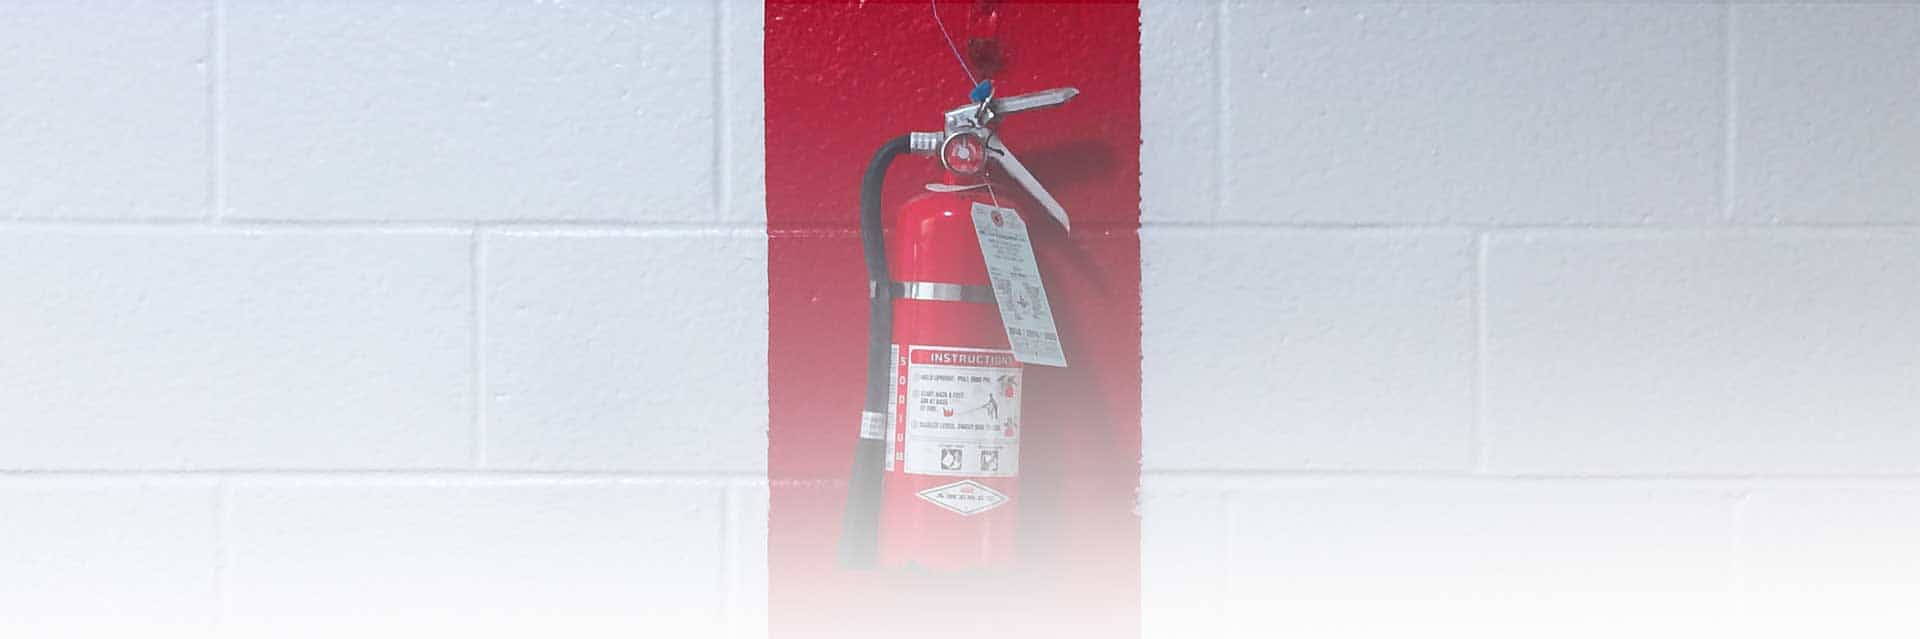 fire extinguisher banner. Fire extinguisher on a wall.